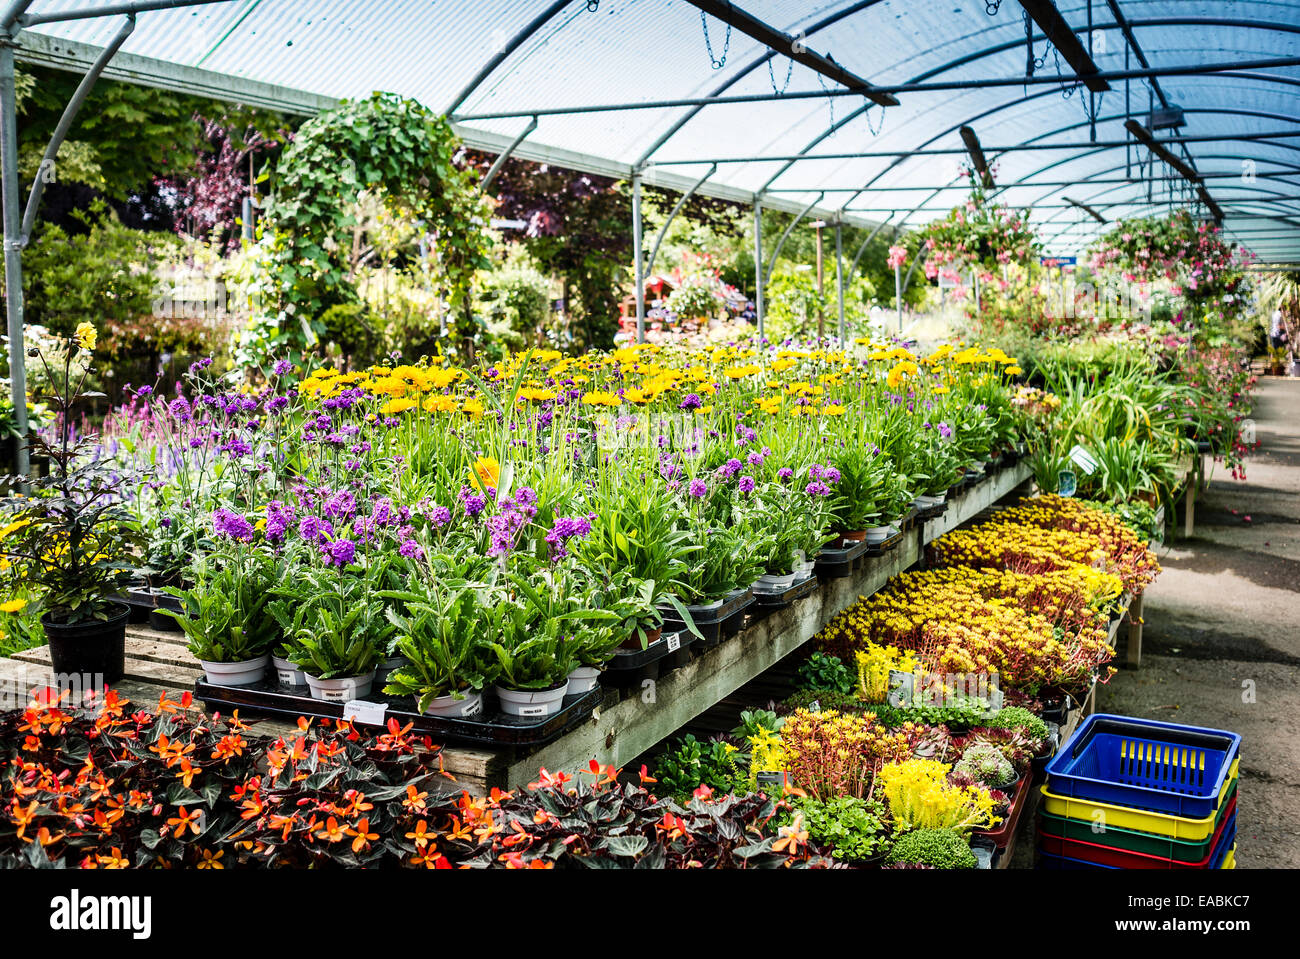 Inside a retail plant nursery in wiltshire uk stock photo for Plant nursery